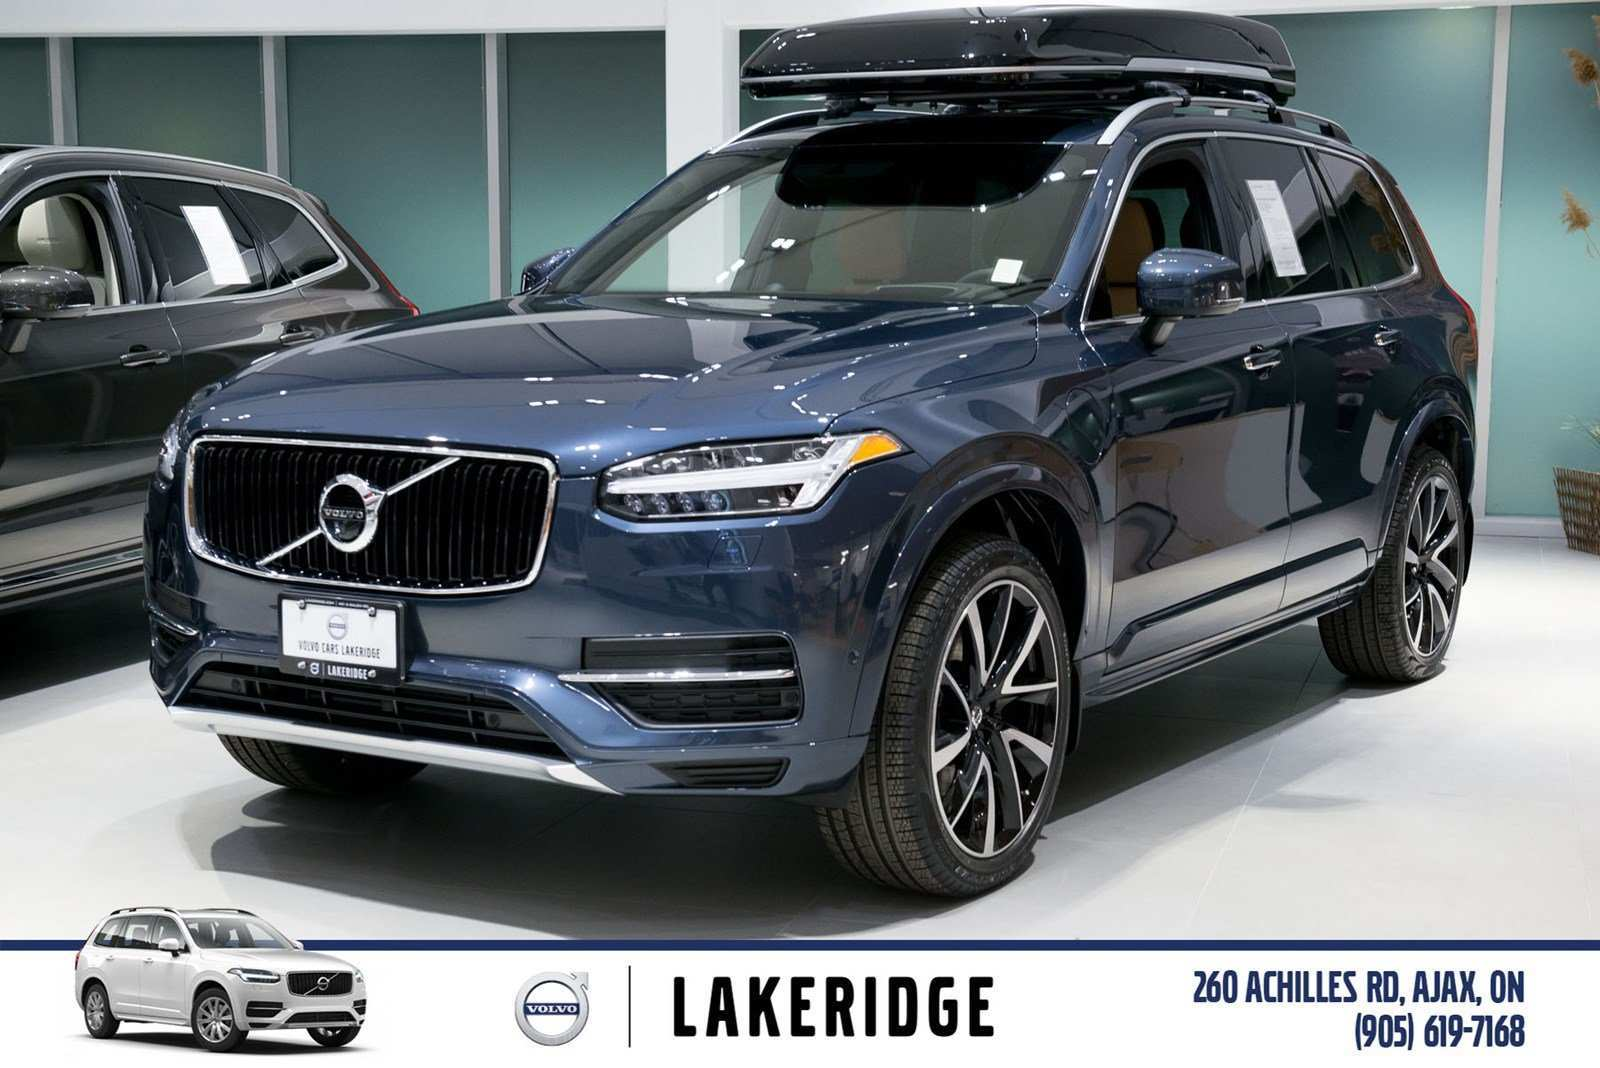 75 The Best 2019 Volvo Xc90 T8 Release Date